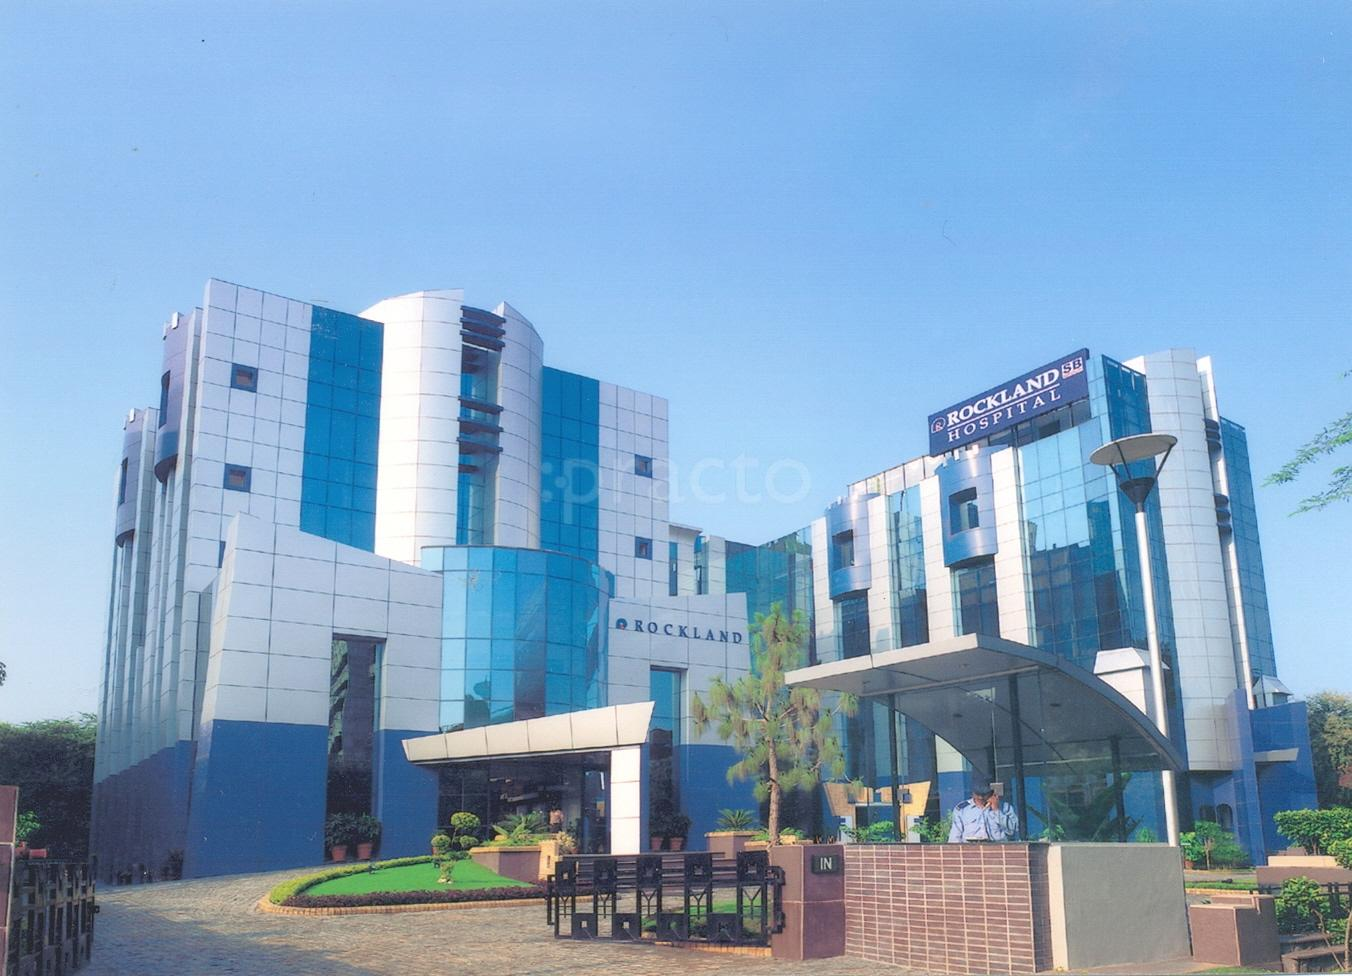 Rockland Hospital is one of the premiere private medical facilities in India. Rockland provides many specialties and procedures including anything from Cosmetic Surgeries to ENT/cochlear implant procedures | Practo